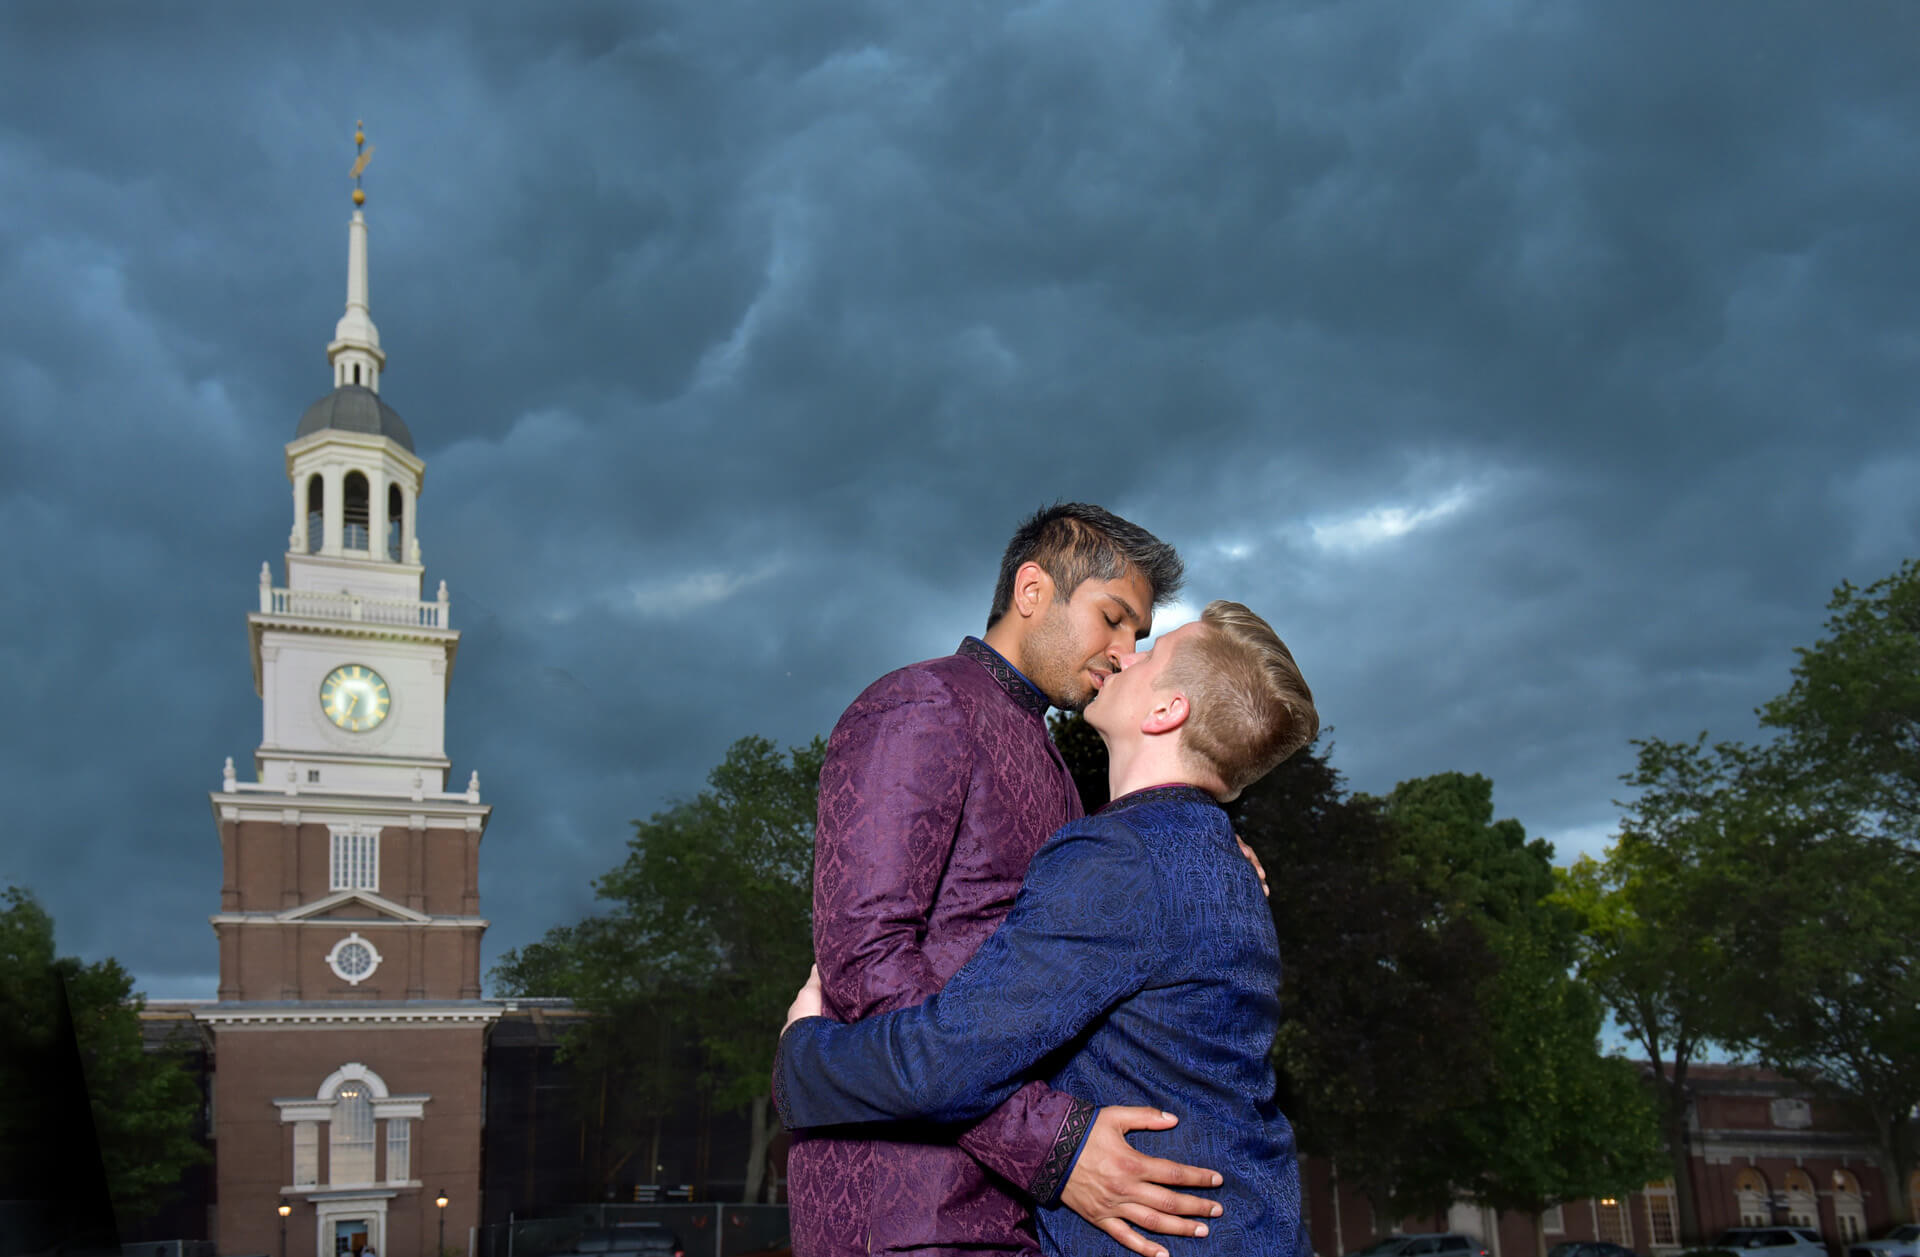 Wedding photojournalist Marci Curtis captures moments during her wedding photography like this same sex couple sneaking a quick kiss in before the storm hits their Henry Ford Museum wedding in Dearborn, Michigan.